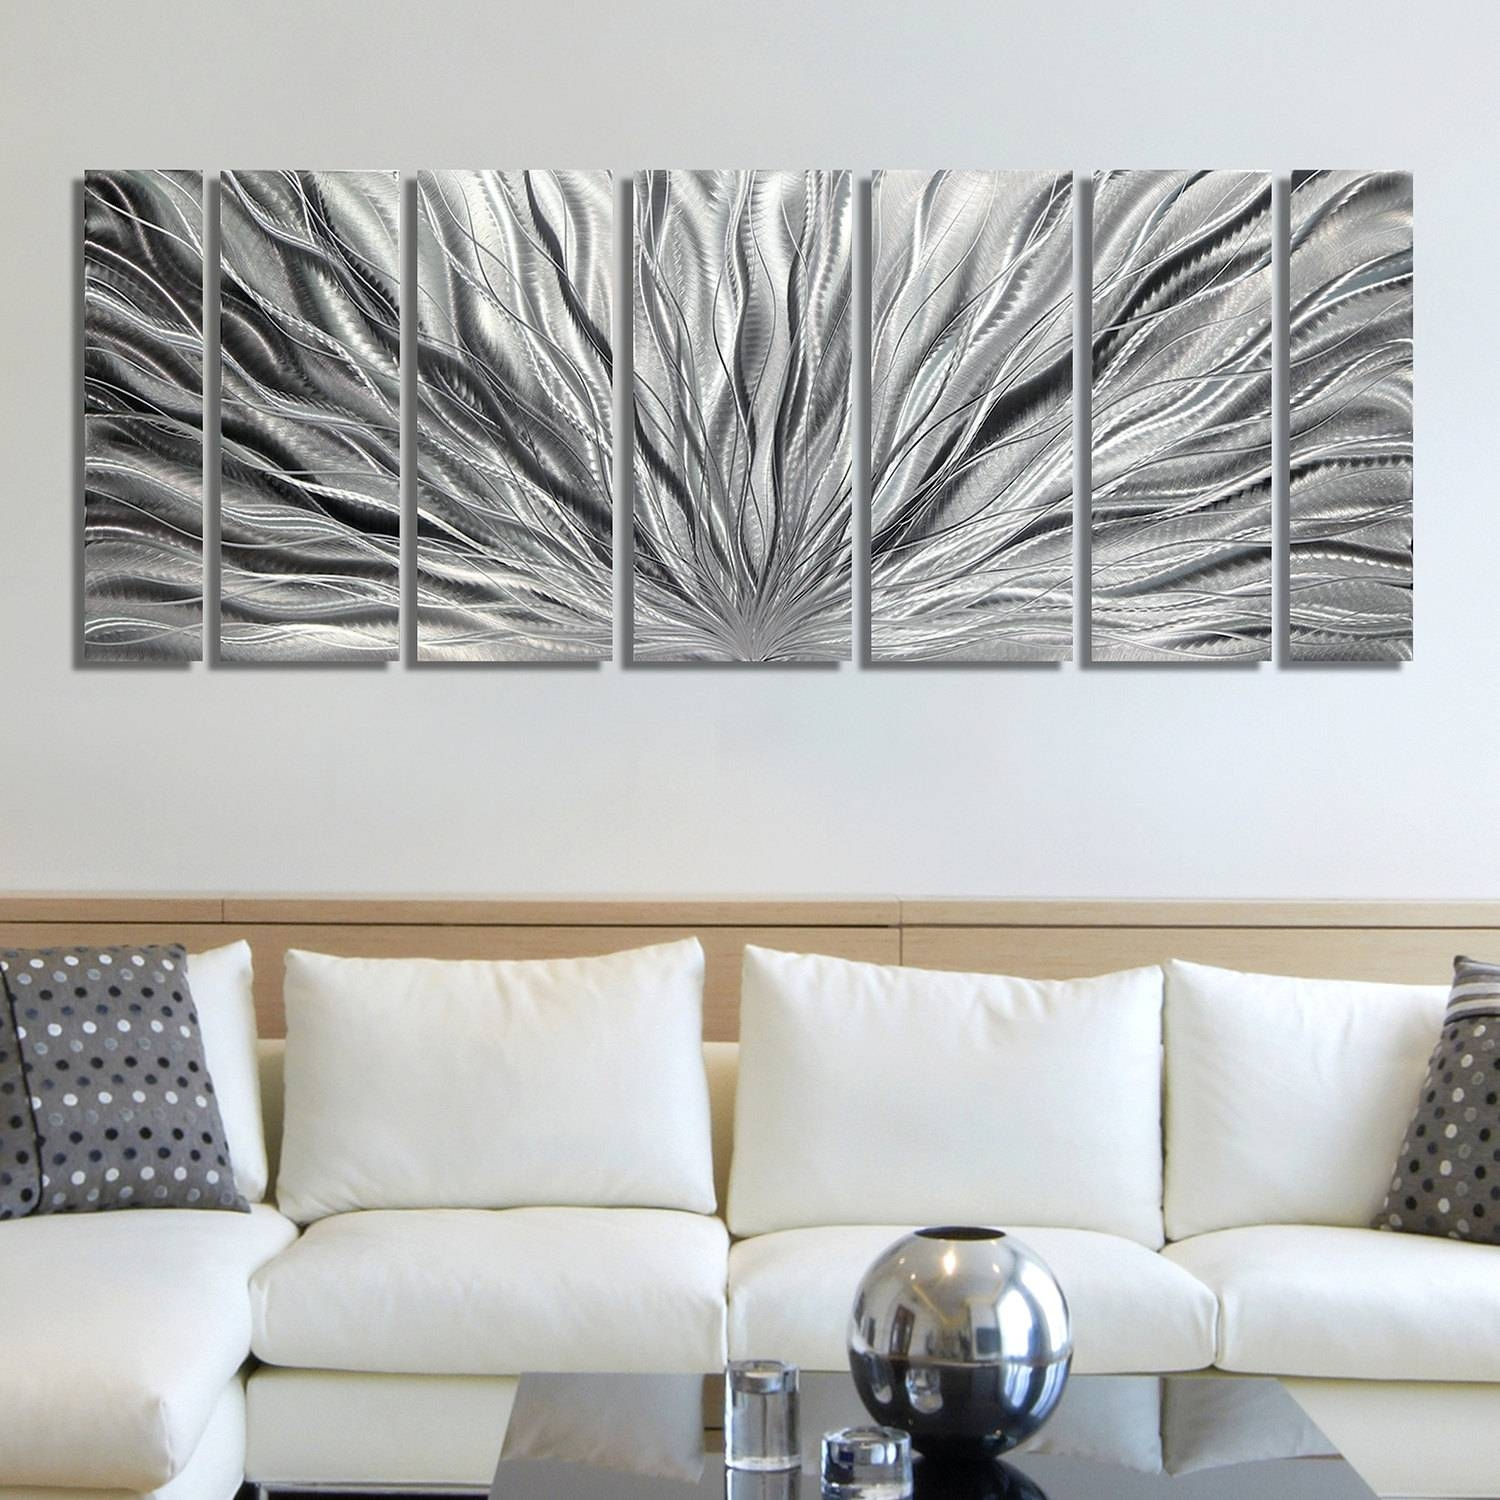 Sale Large Multi Panel Metal Wall Art In All Silver Intended For 2018 Silver Metal Wall Art (View 12 of 20)